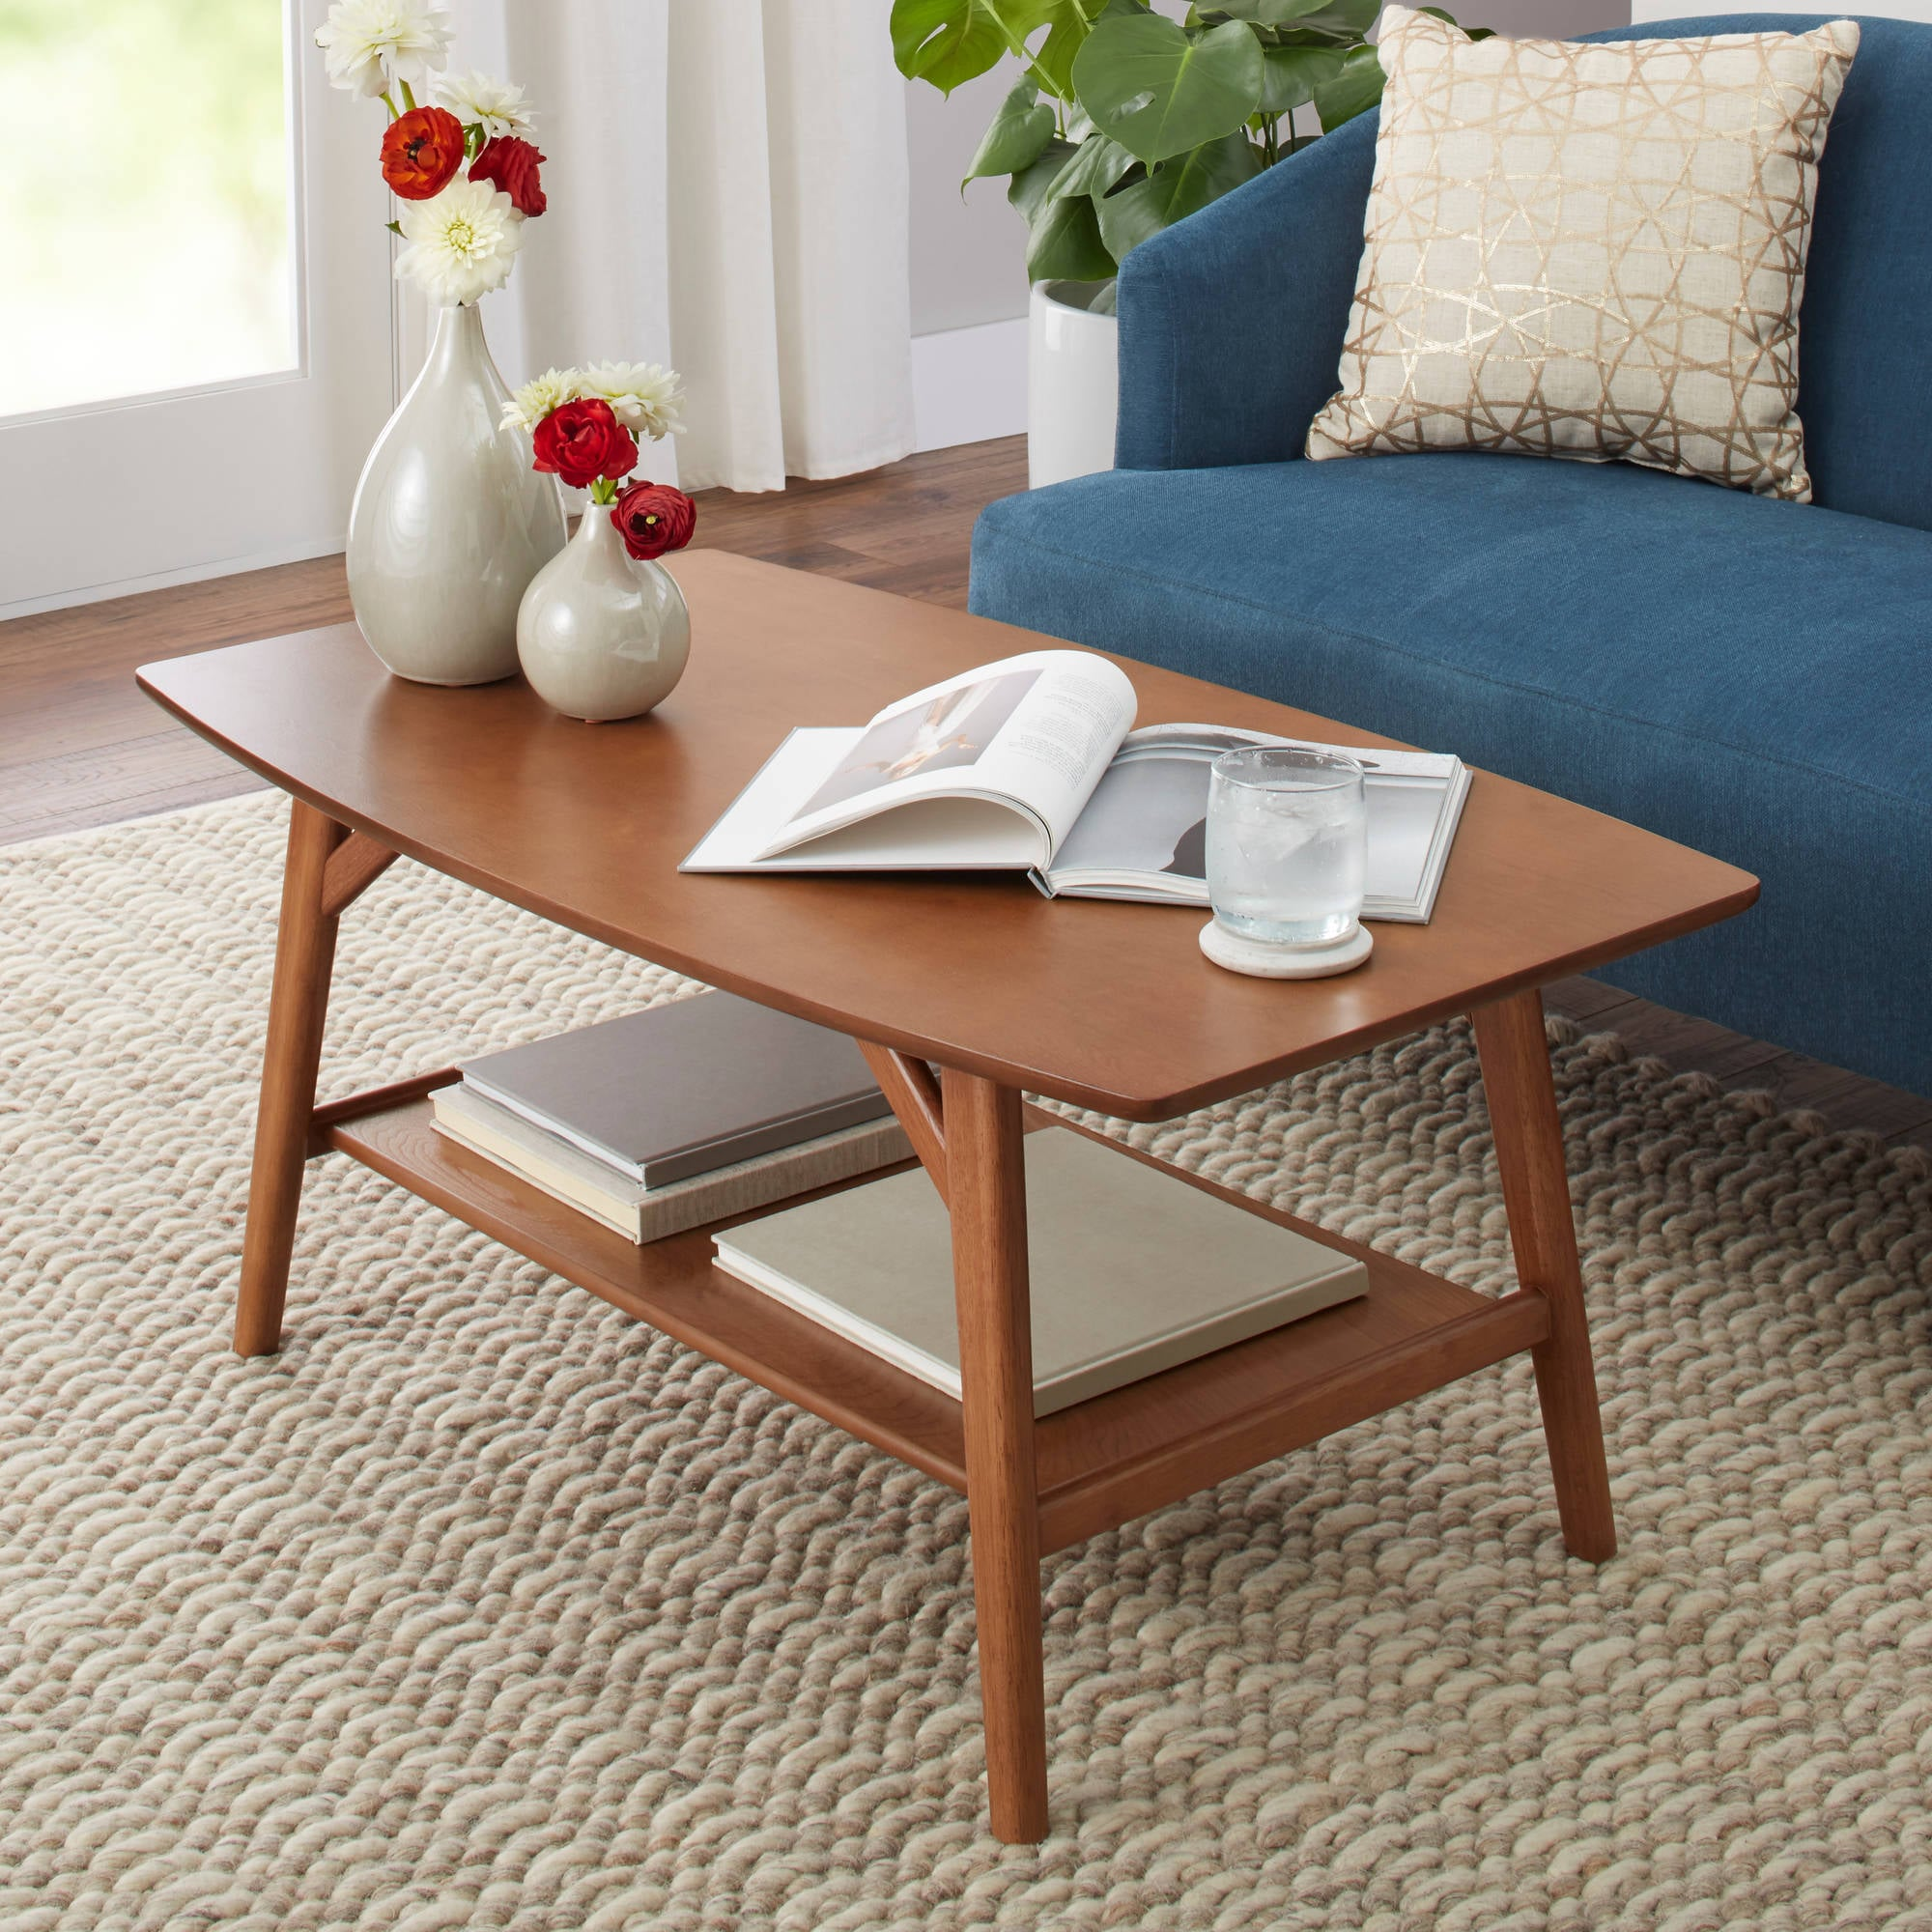 Image of: Better Homes Gardens Reed Mid Century Modern Coffee Table The 19 Most Stylish Coffee Tables Money Can Buy For Under 200 Popsugar Home Photo 20